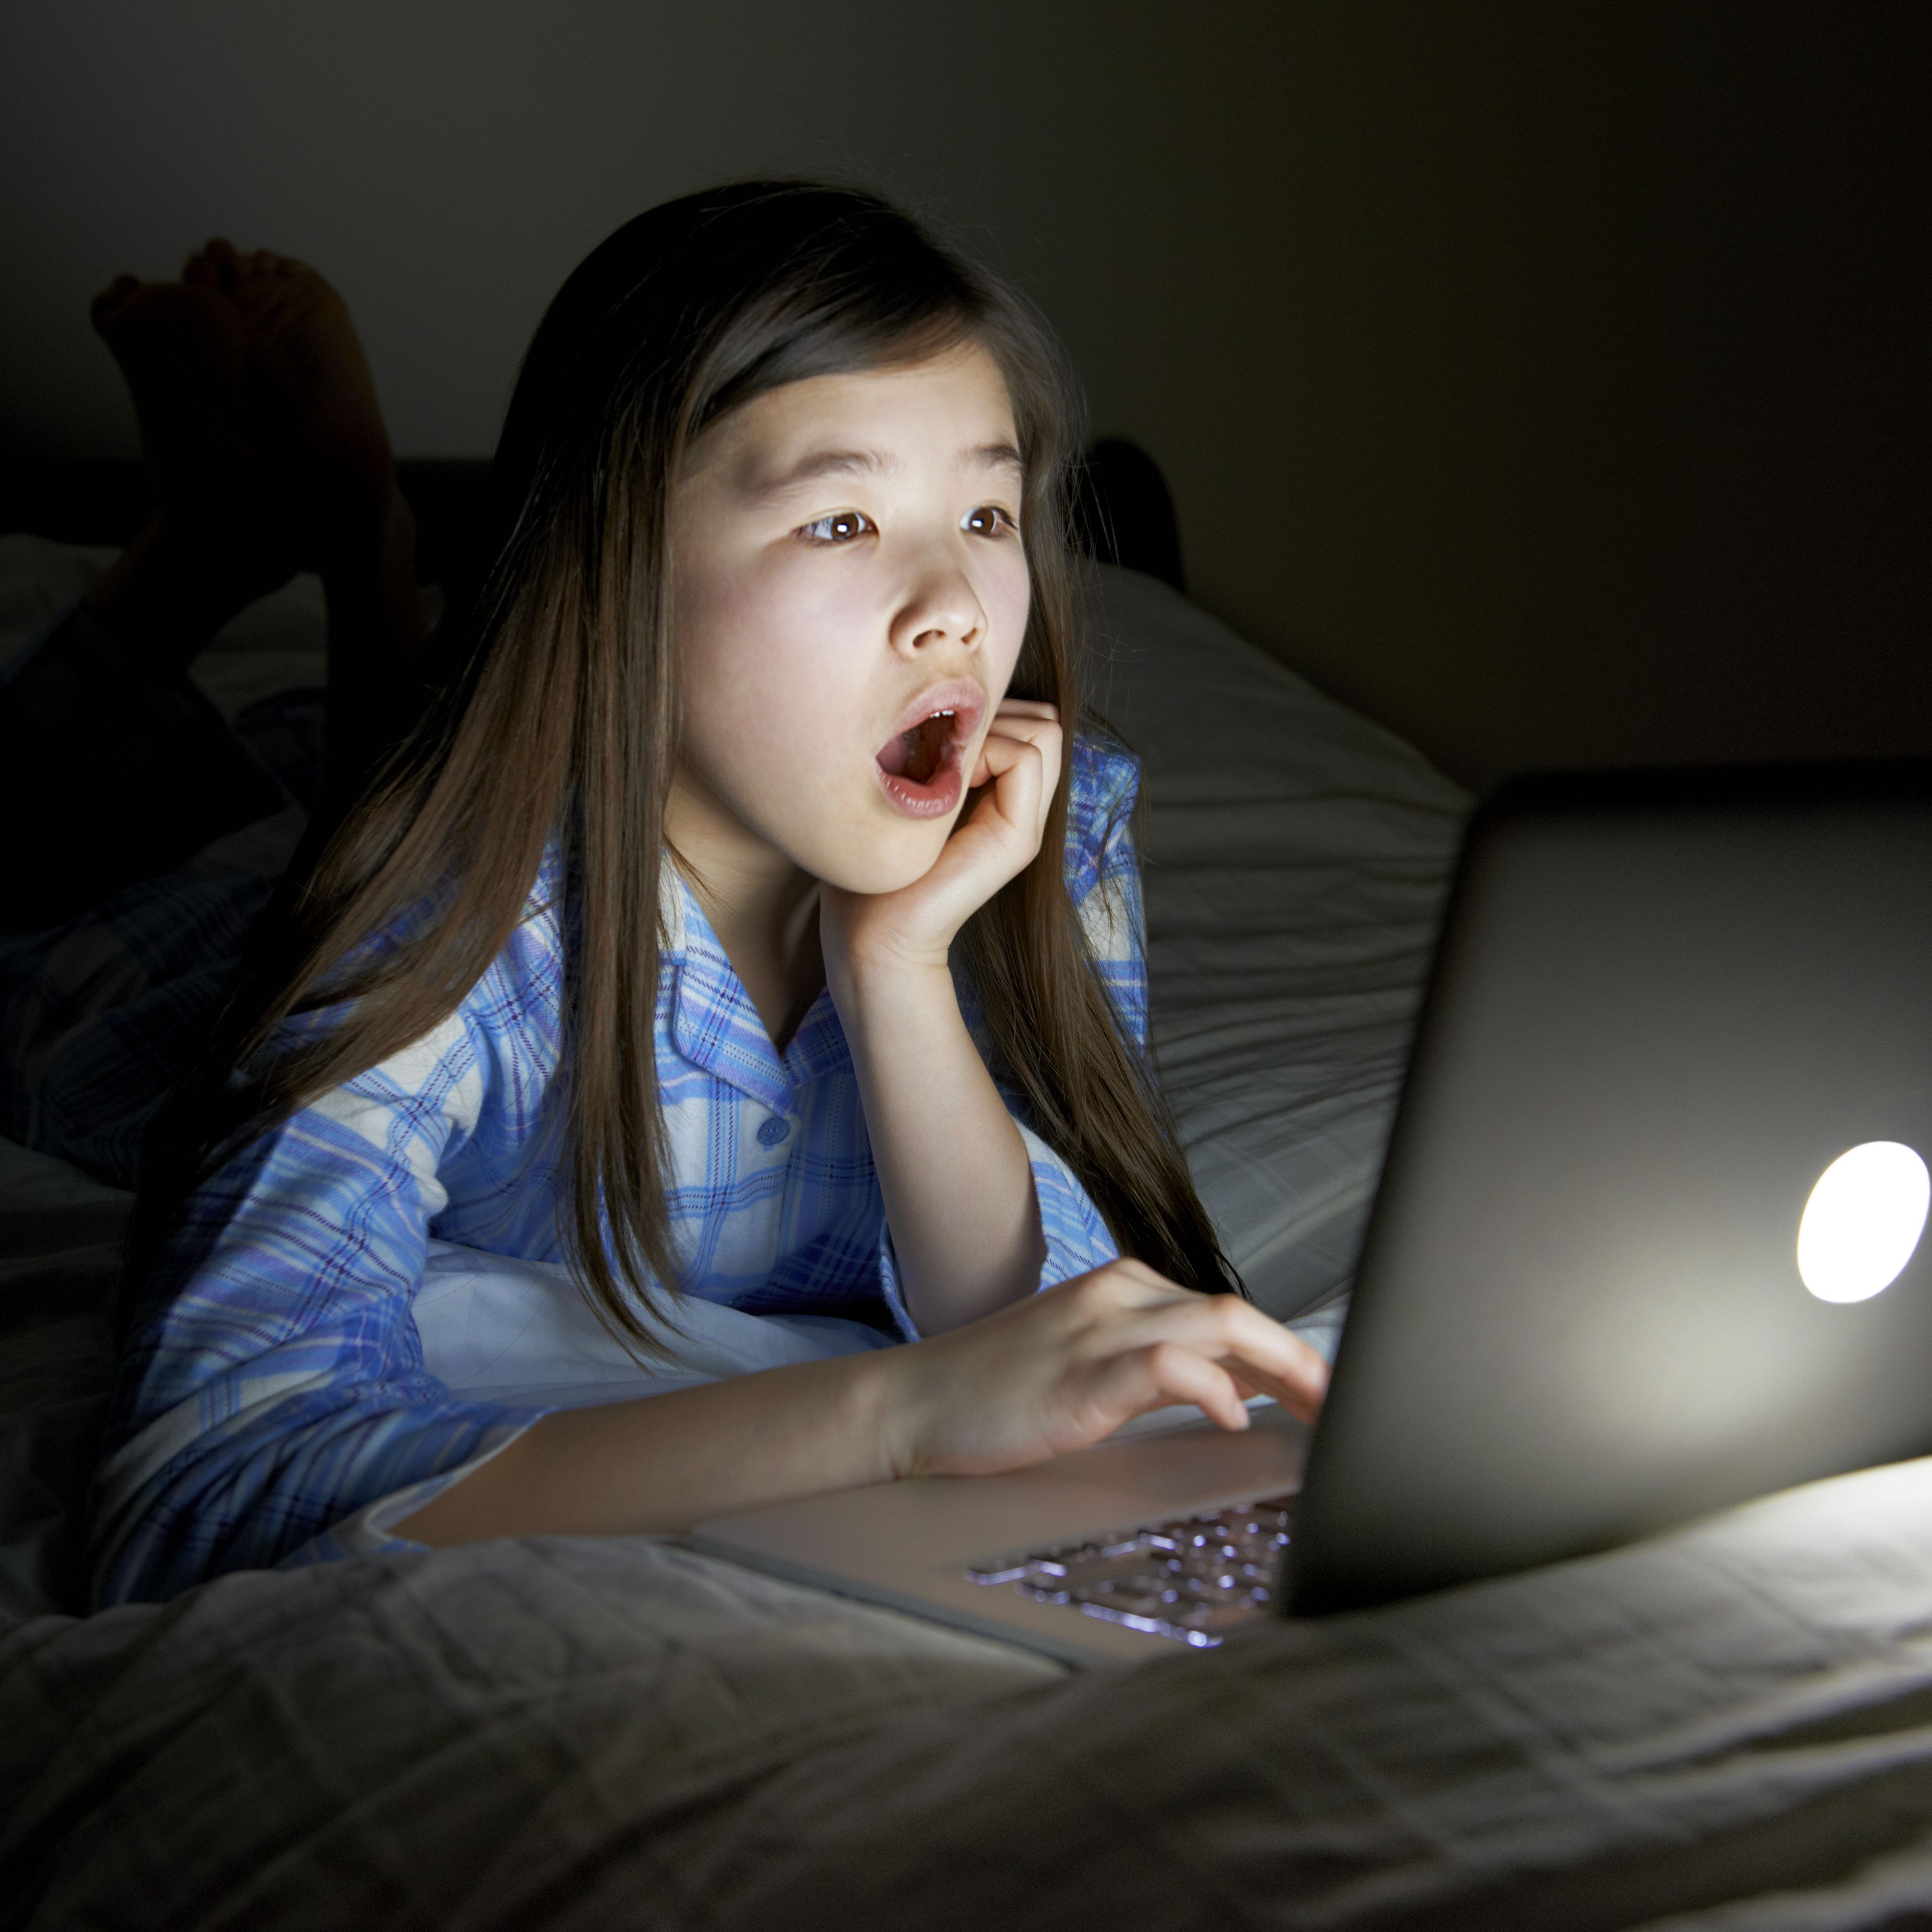 Parental Controls for the Internet and Cell Phones